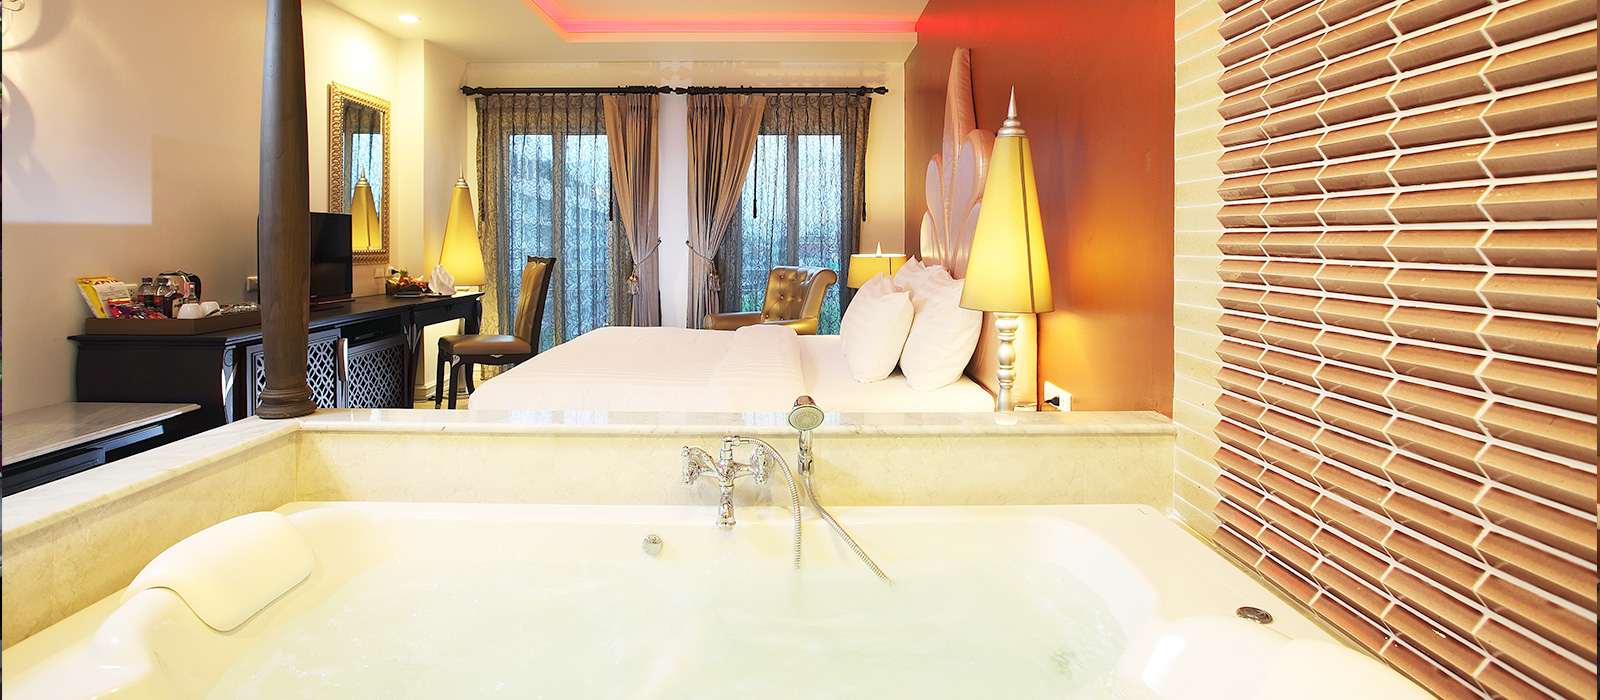 Romantic Resort In Bangkok With Deluxe Room Type And